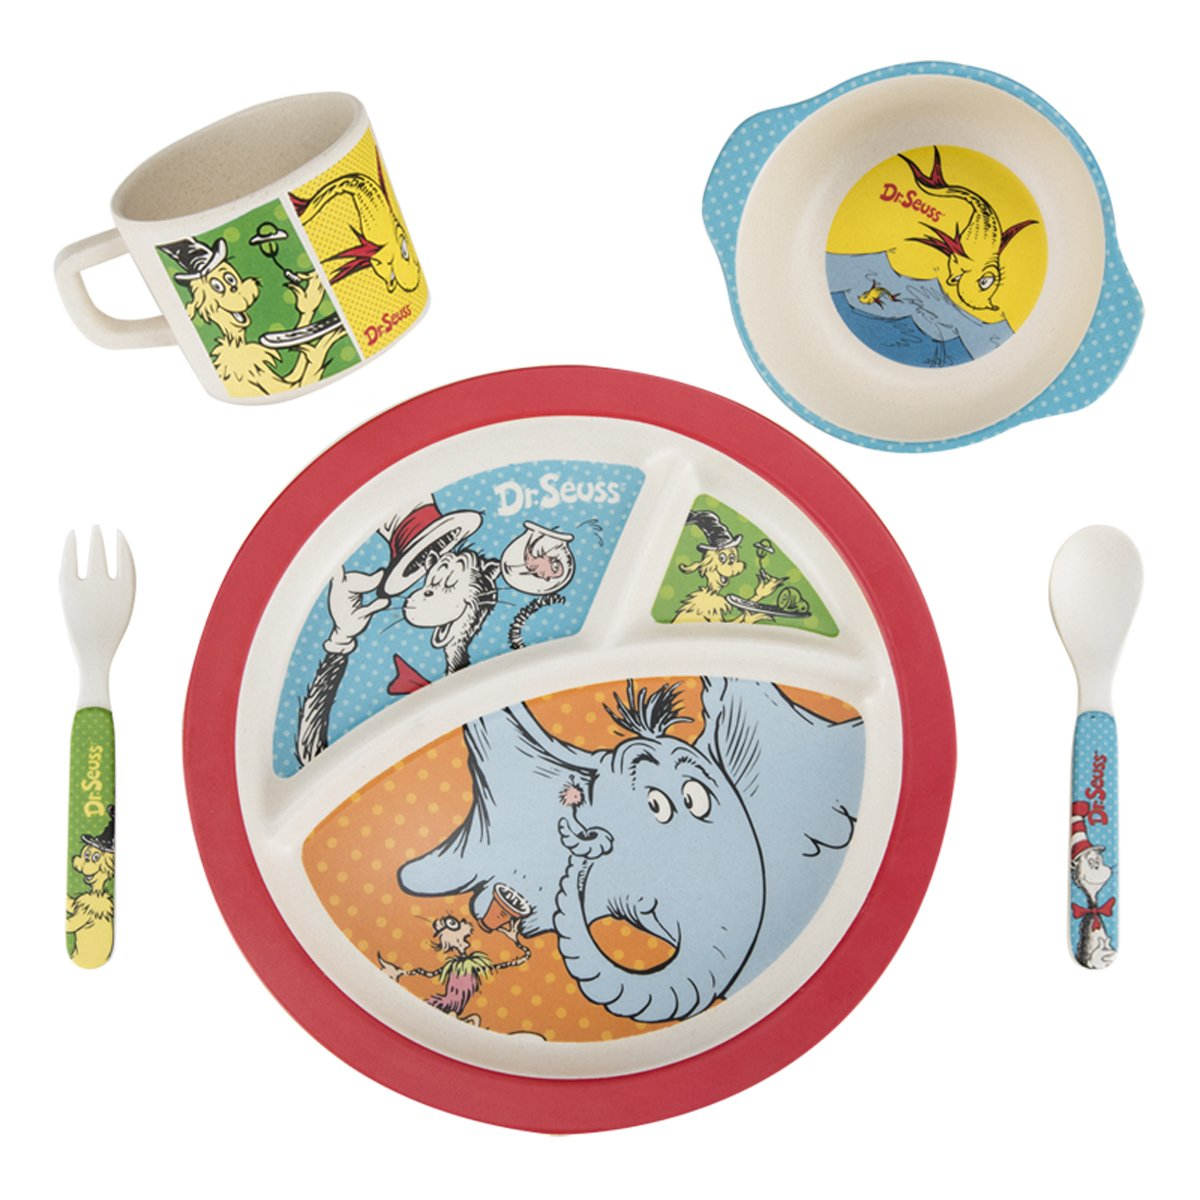 Amazon.com Vandor 17004 Dr. Seuss 5 Piece Bamboo Dinnerware Set Multicolored Kitchen \u0026 Dining  sc 1 st  Amazon.com : bamboo dinnerware - pezcame.com